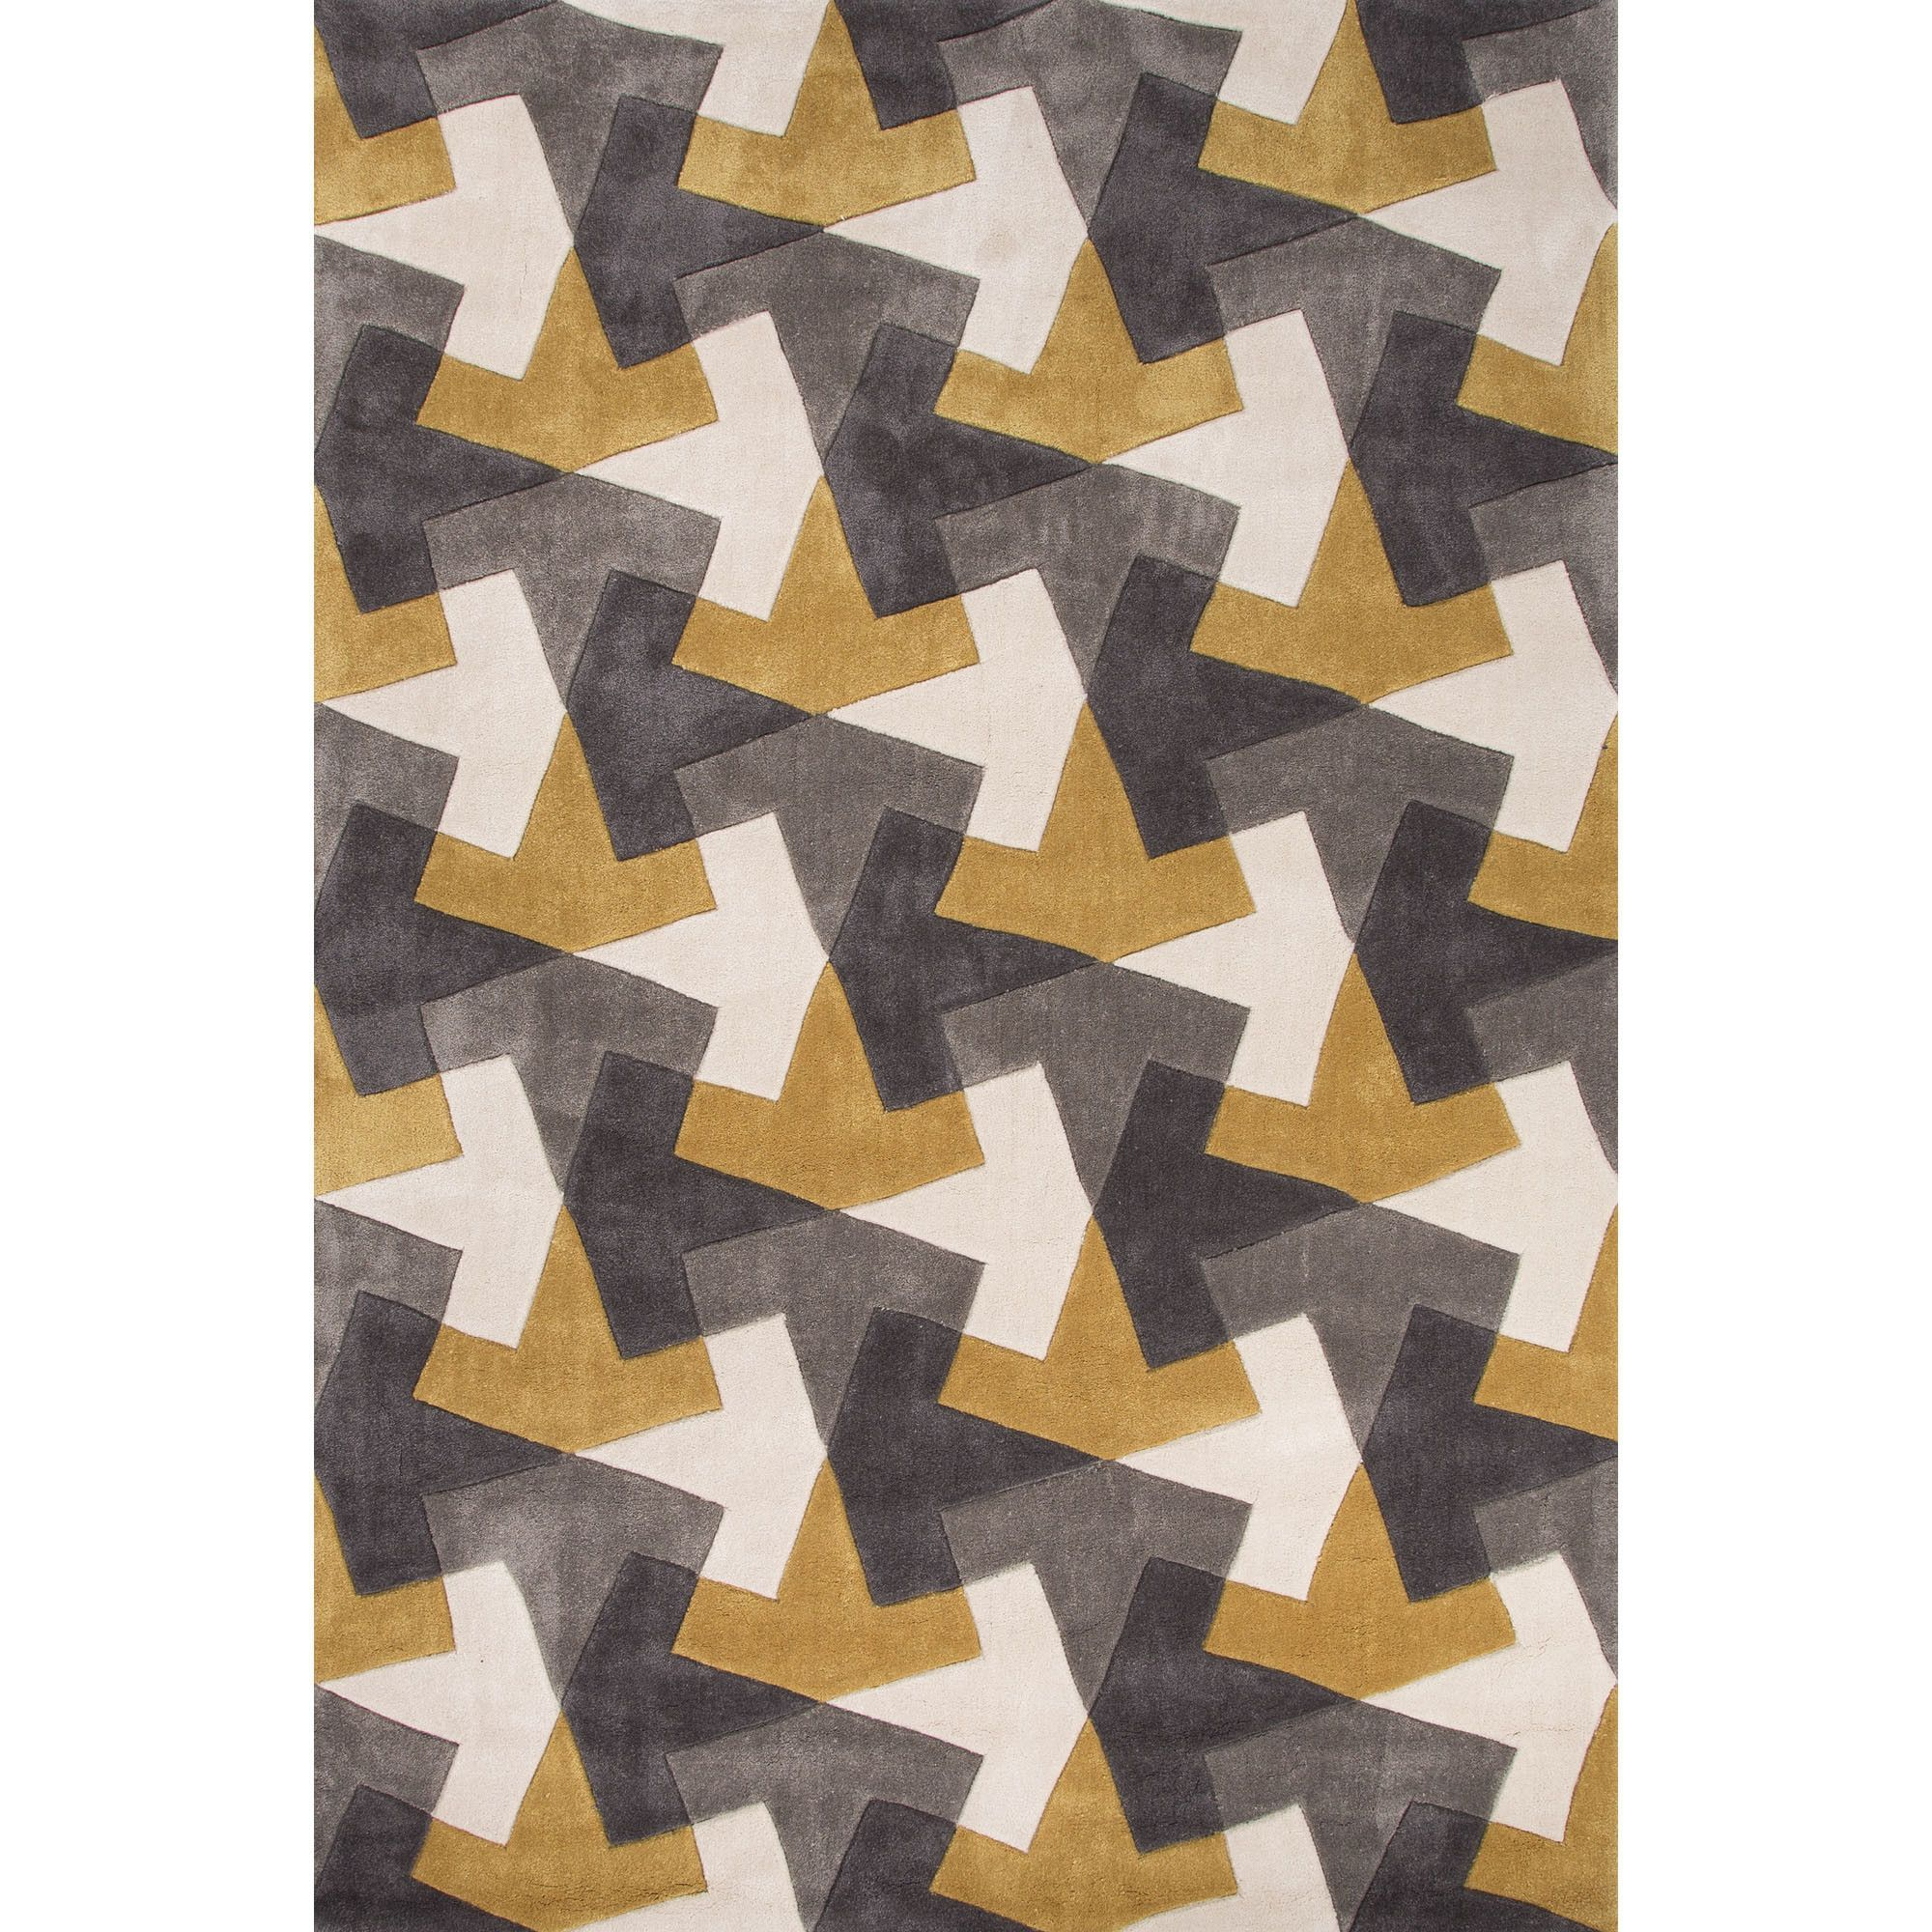 ideas rugs alltelmd area gold decoration rug contemporary club tremendous and gray grey bashian